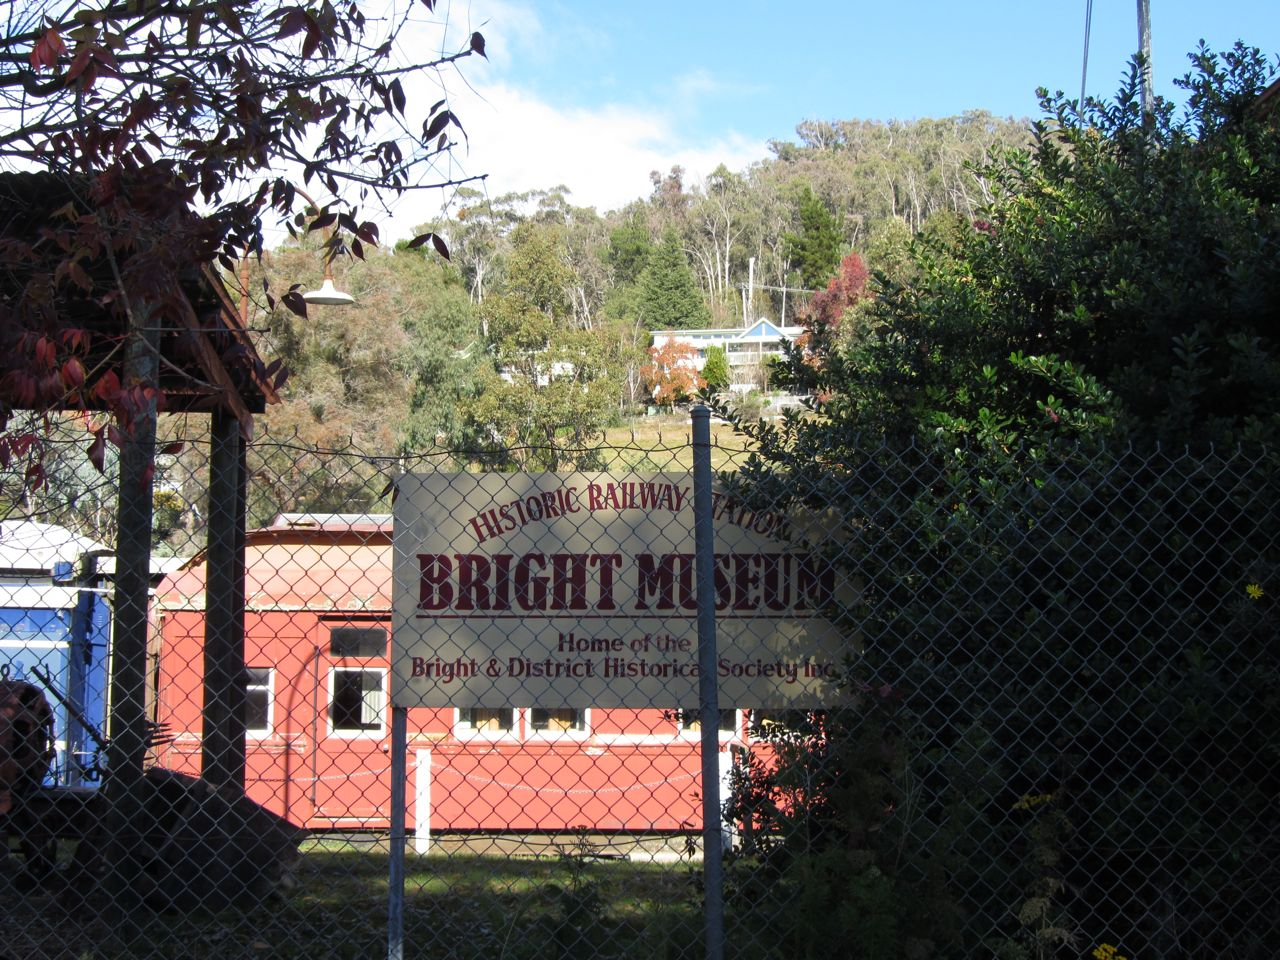 Bright Museum at the deprecated railway station features deprecated rolling stock.